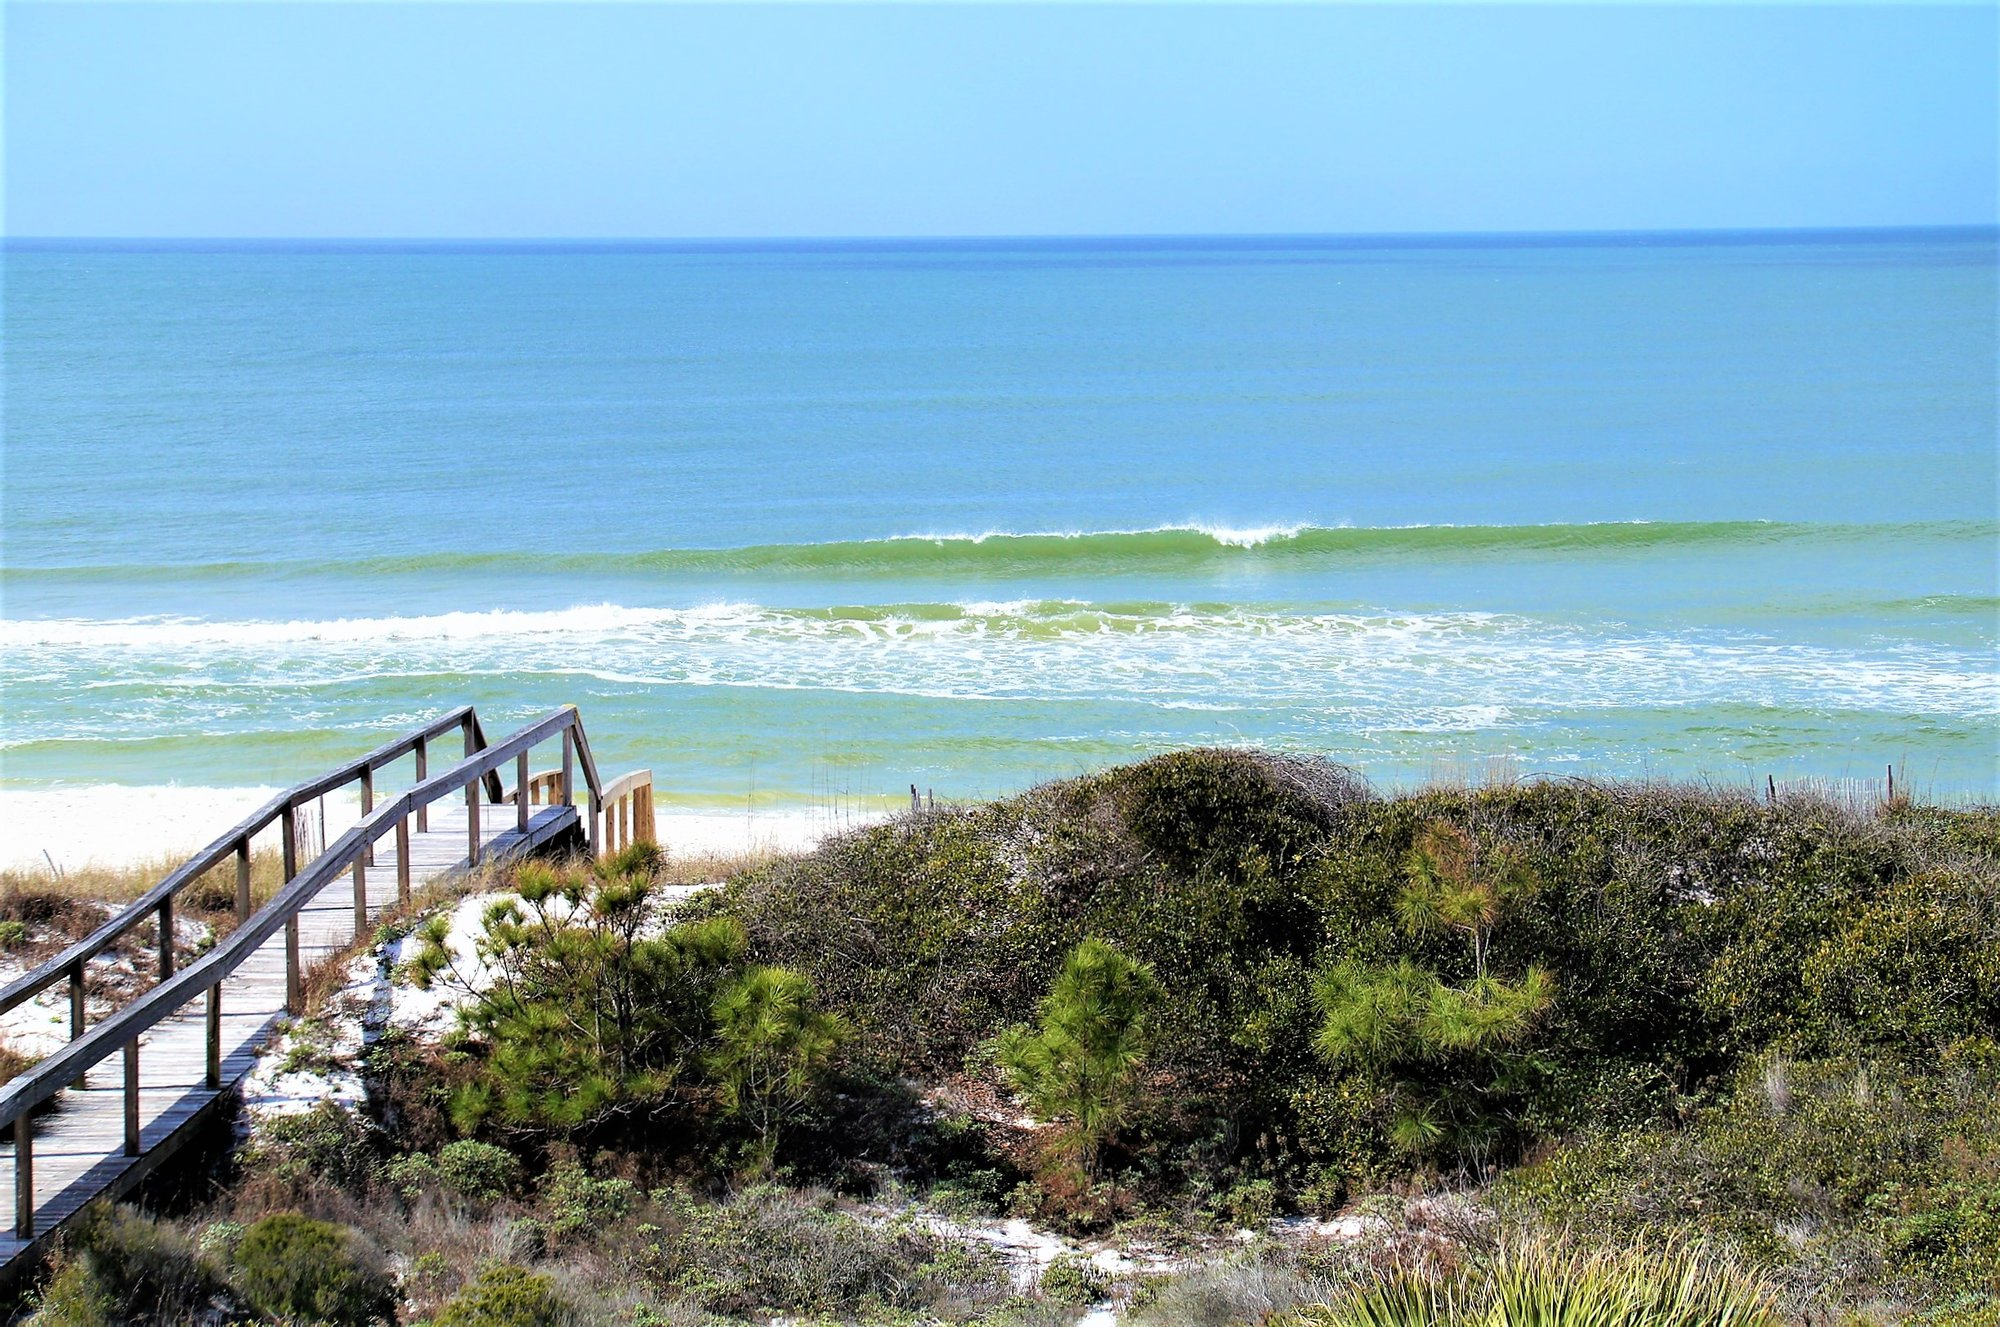 Cape San Blas Beach View